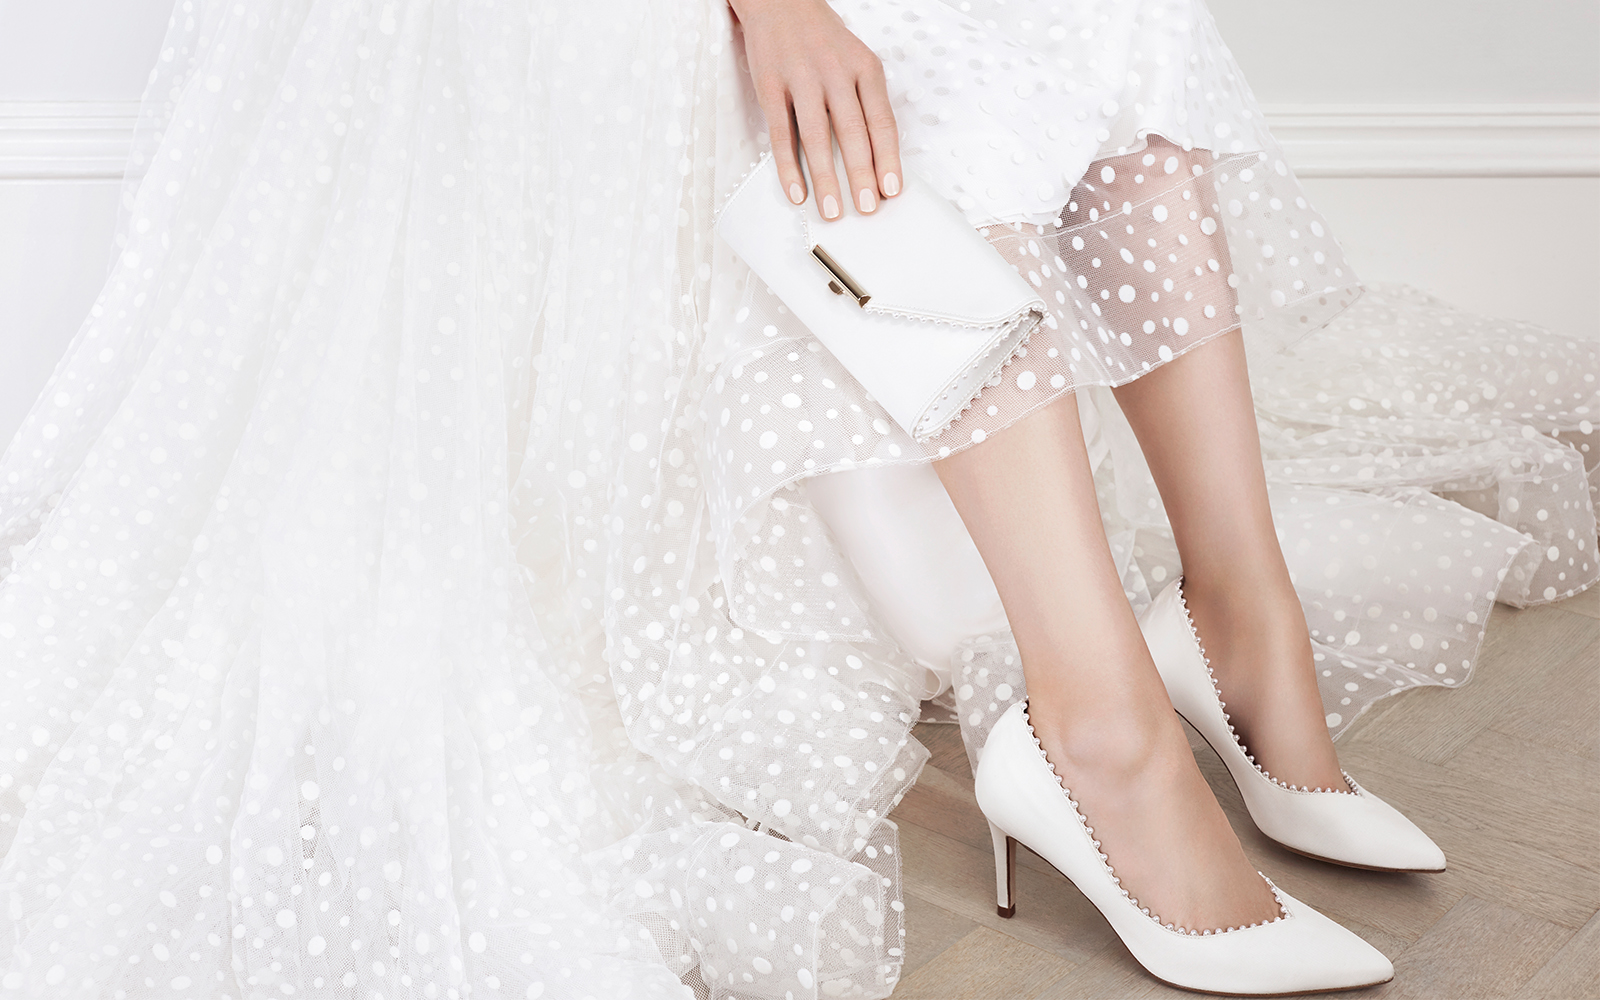 Kate Middleton's Go-to Designers Just Created a Bridal Shoe Collection Worthy of a Royal Wedding